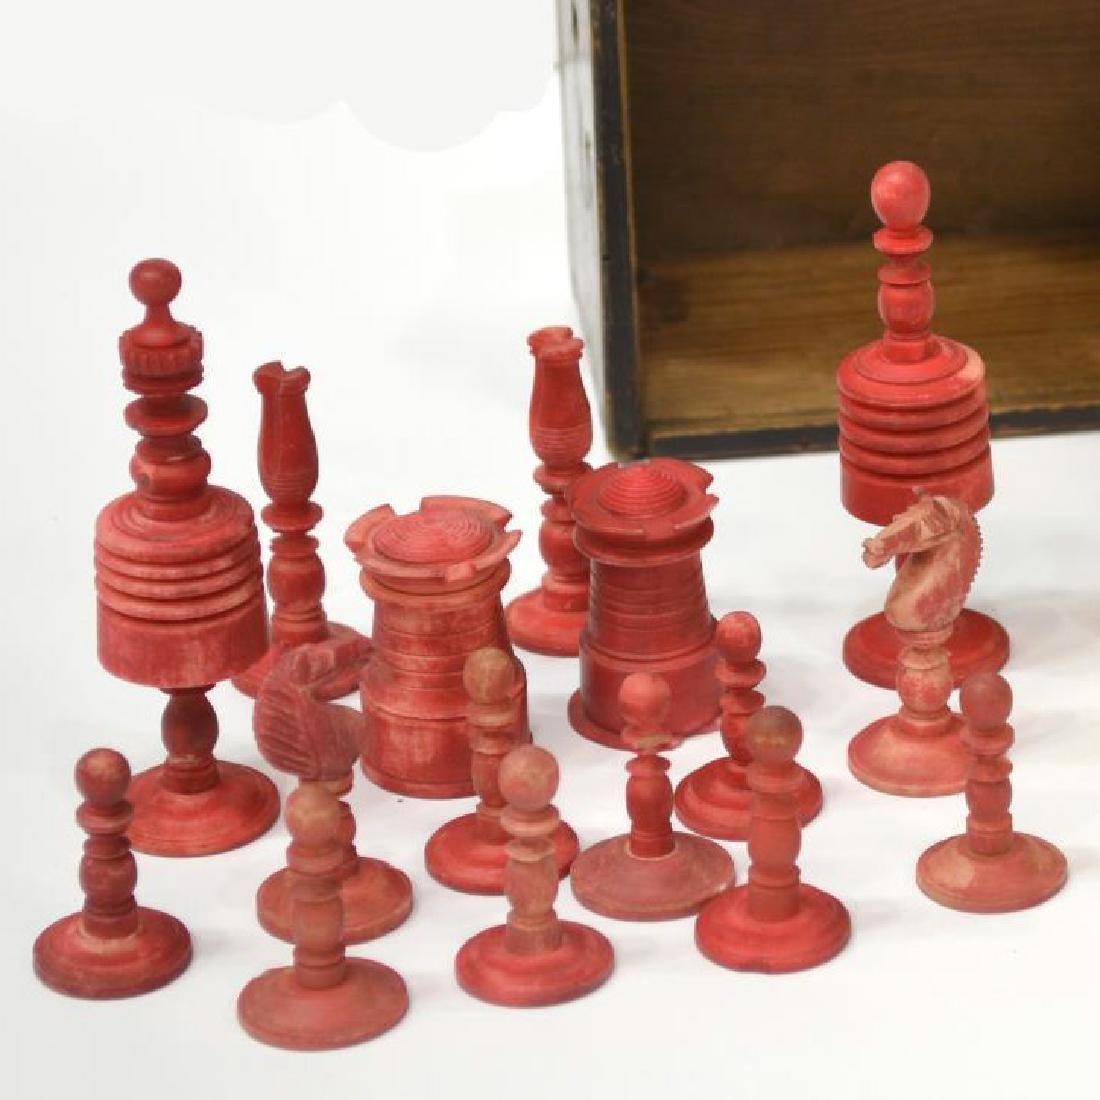 U.S. CIVIL WAR ERA CHESS SET, 32 PIECES - 3